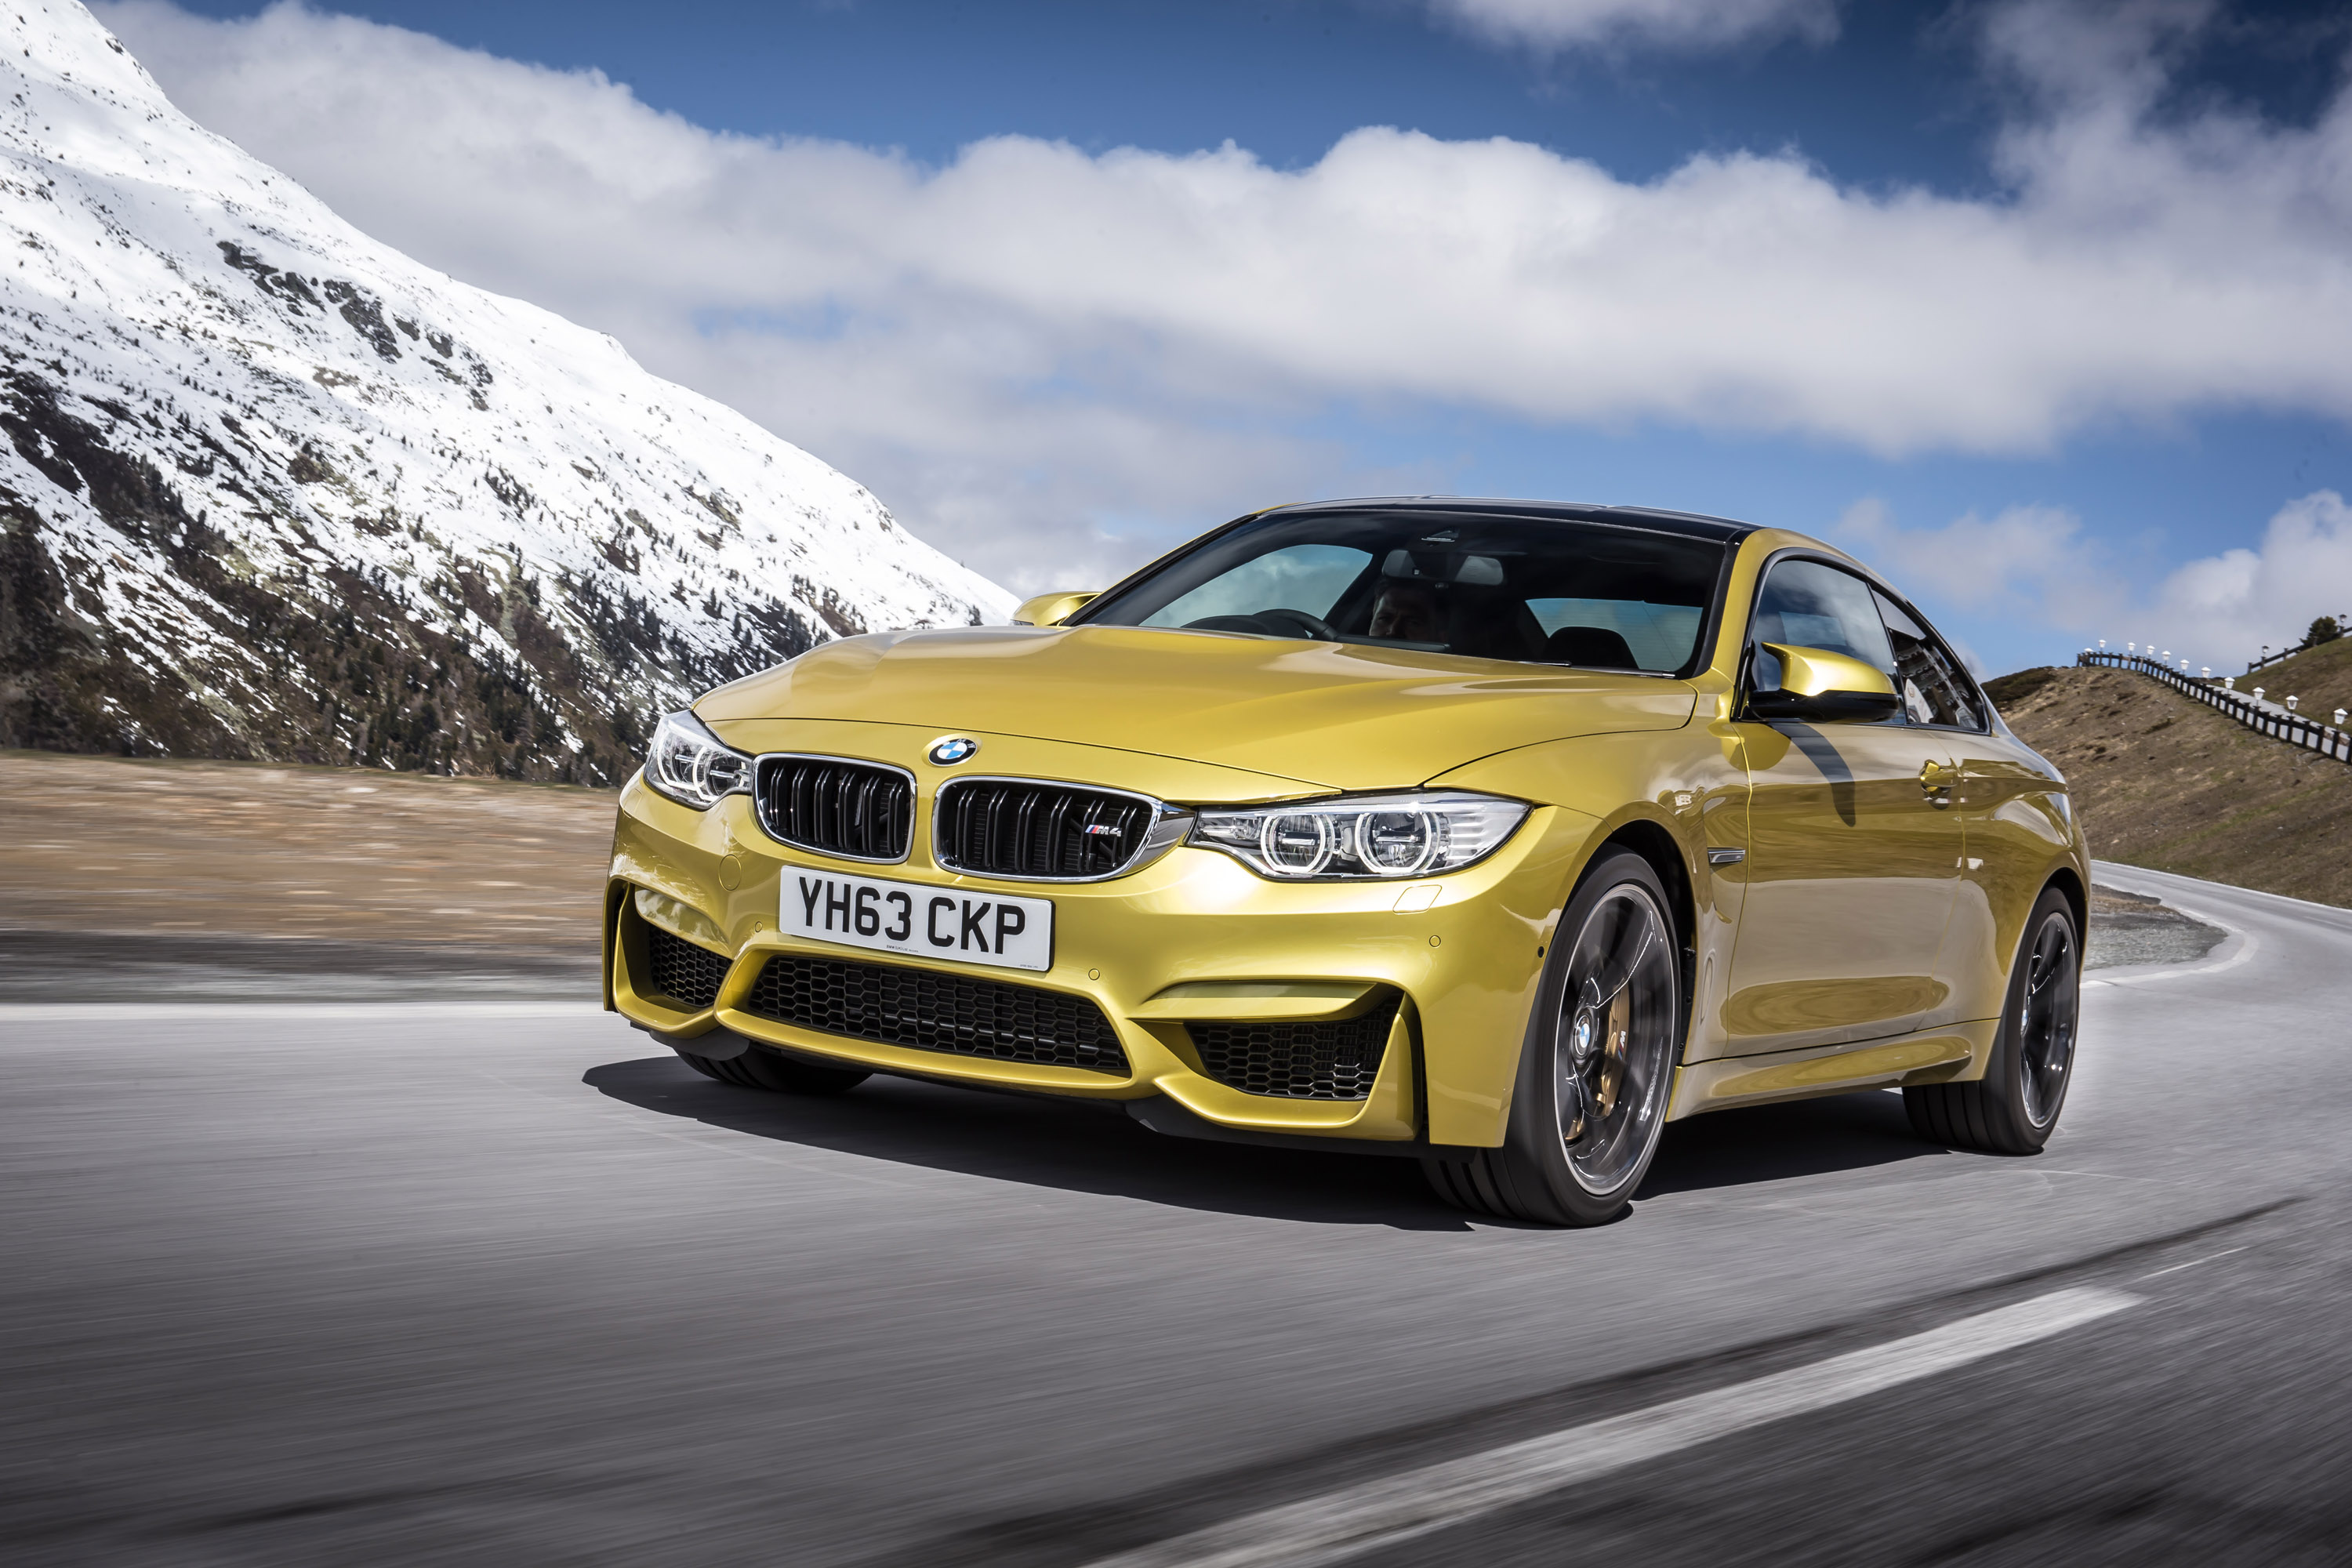 2014 Bmw M3 Saloon And M4 Coupe Uk Price